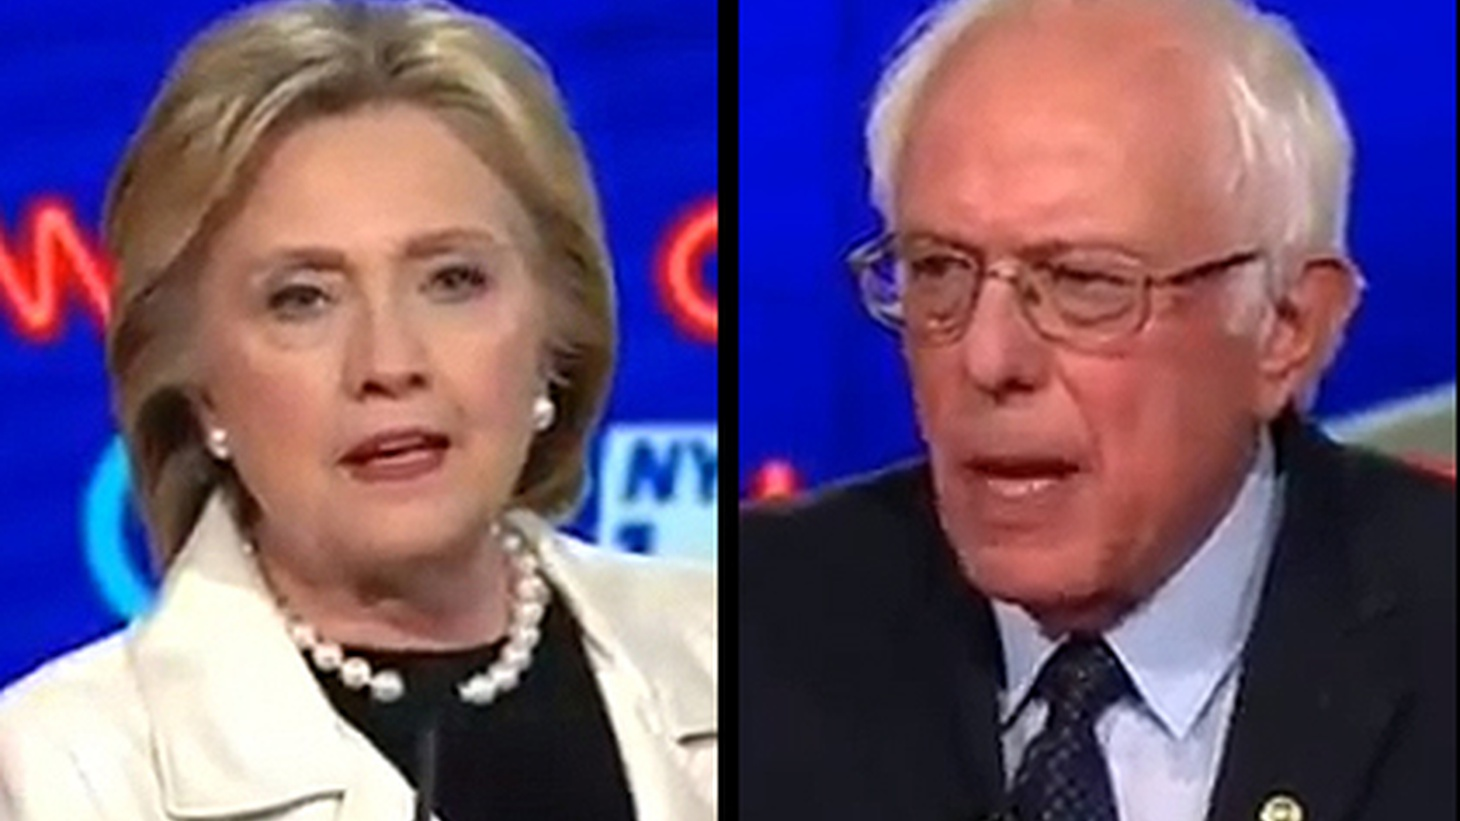 Rep. Barney Frank says Bernie Sanders should clarify what size of bank is acceptable.